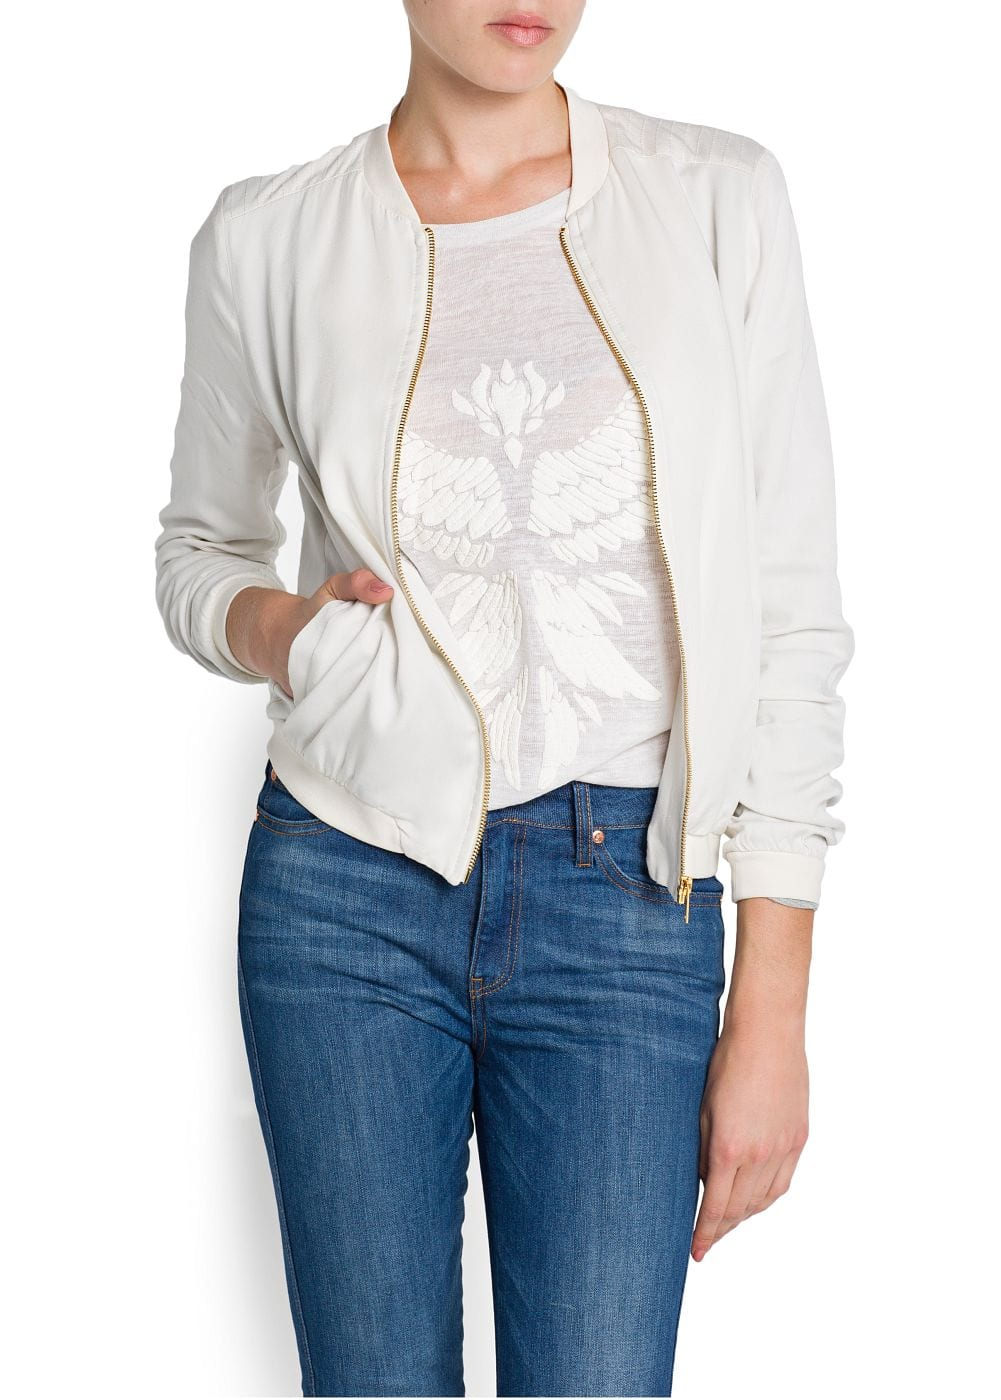 Decorative stitching bomber jacket